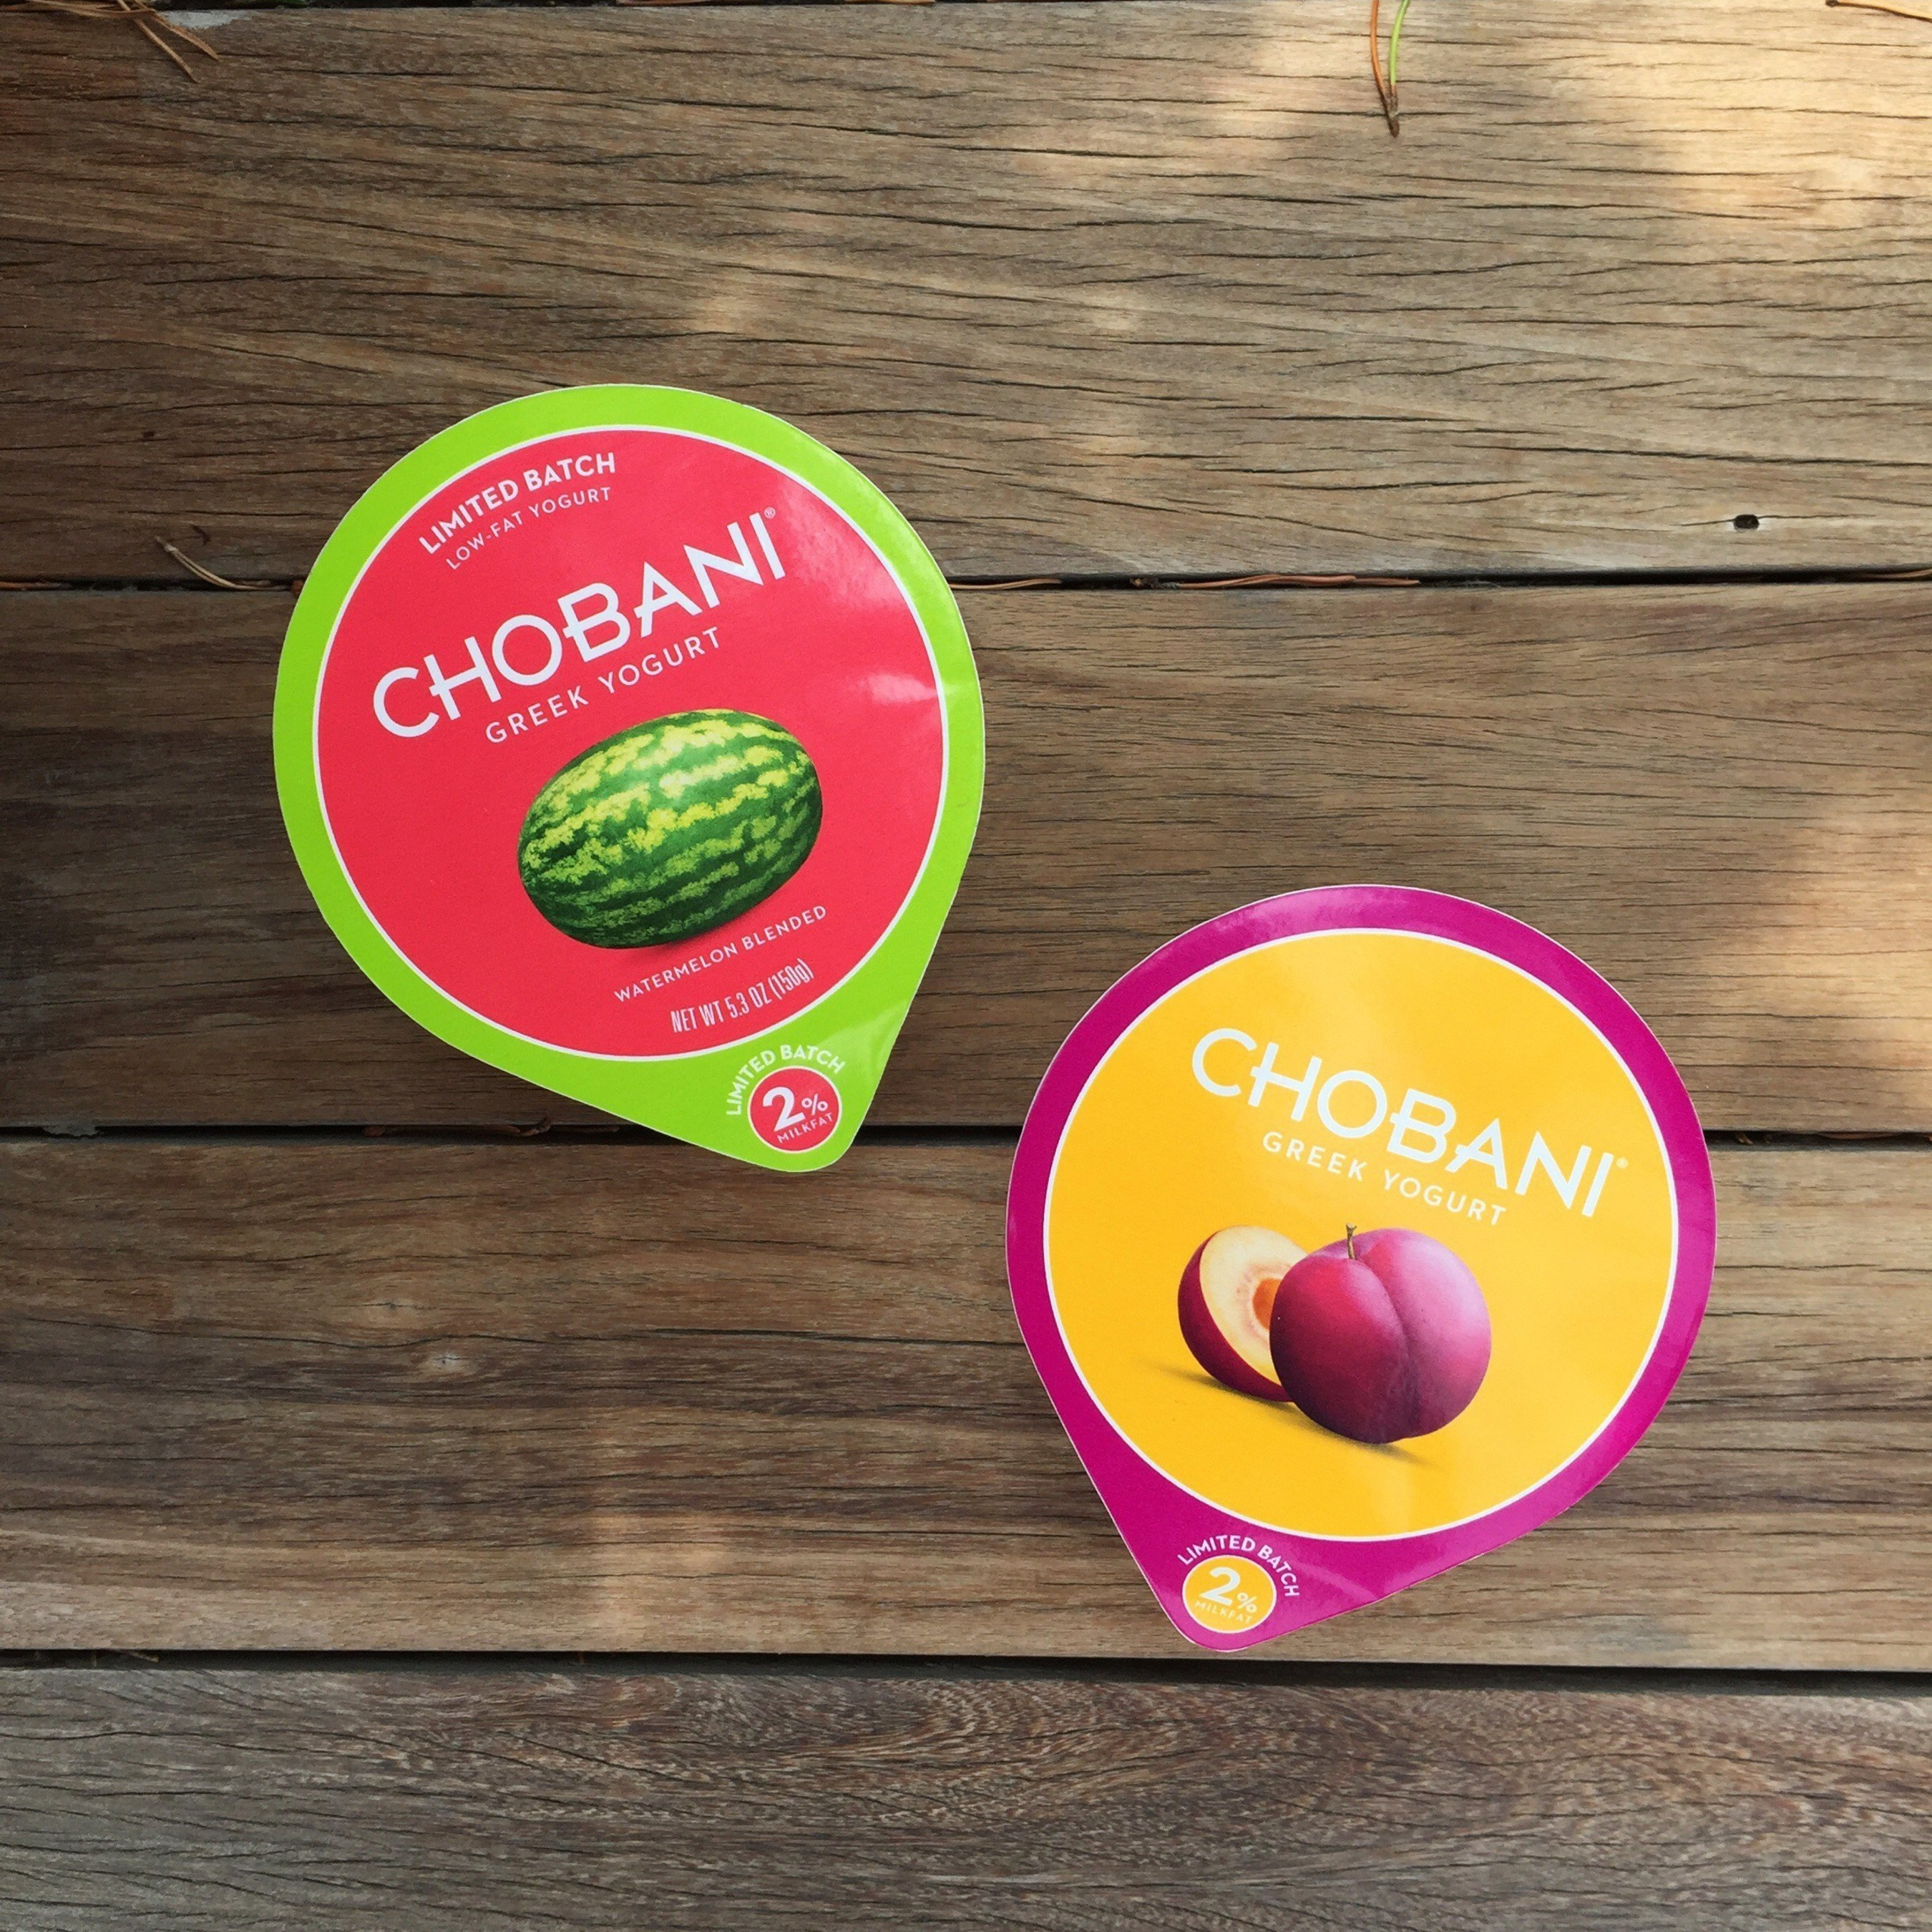 Chobani, America's No. 1-selling Greek Yogurt brand, is launching Limited Batch Plum and bringing back popular Chobani Watermelon, both available through August.